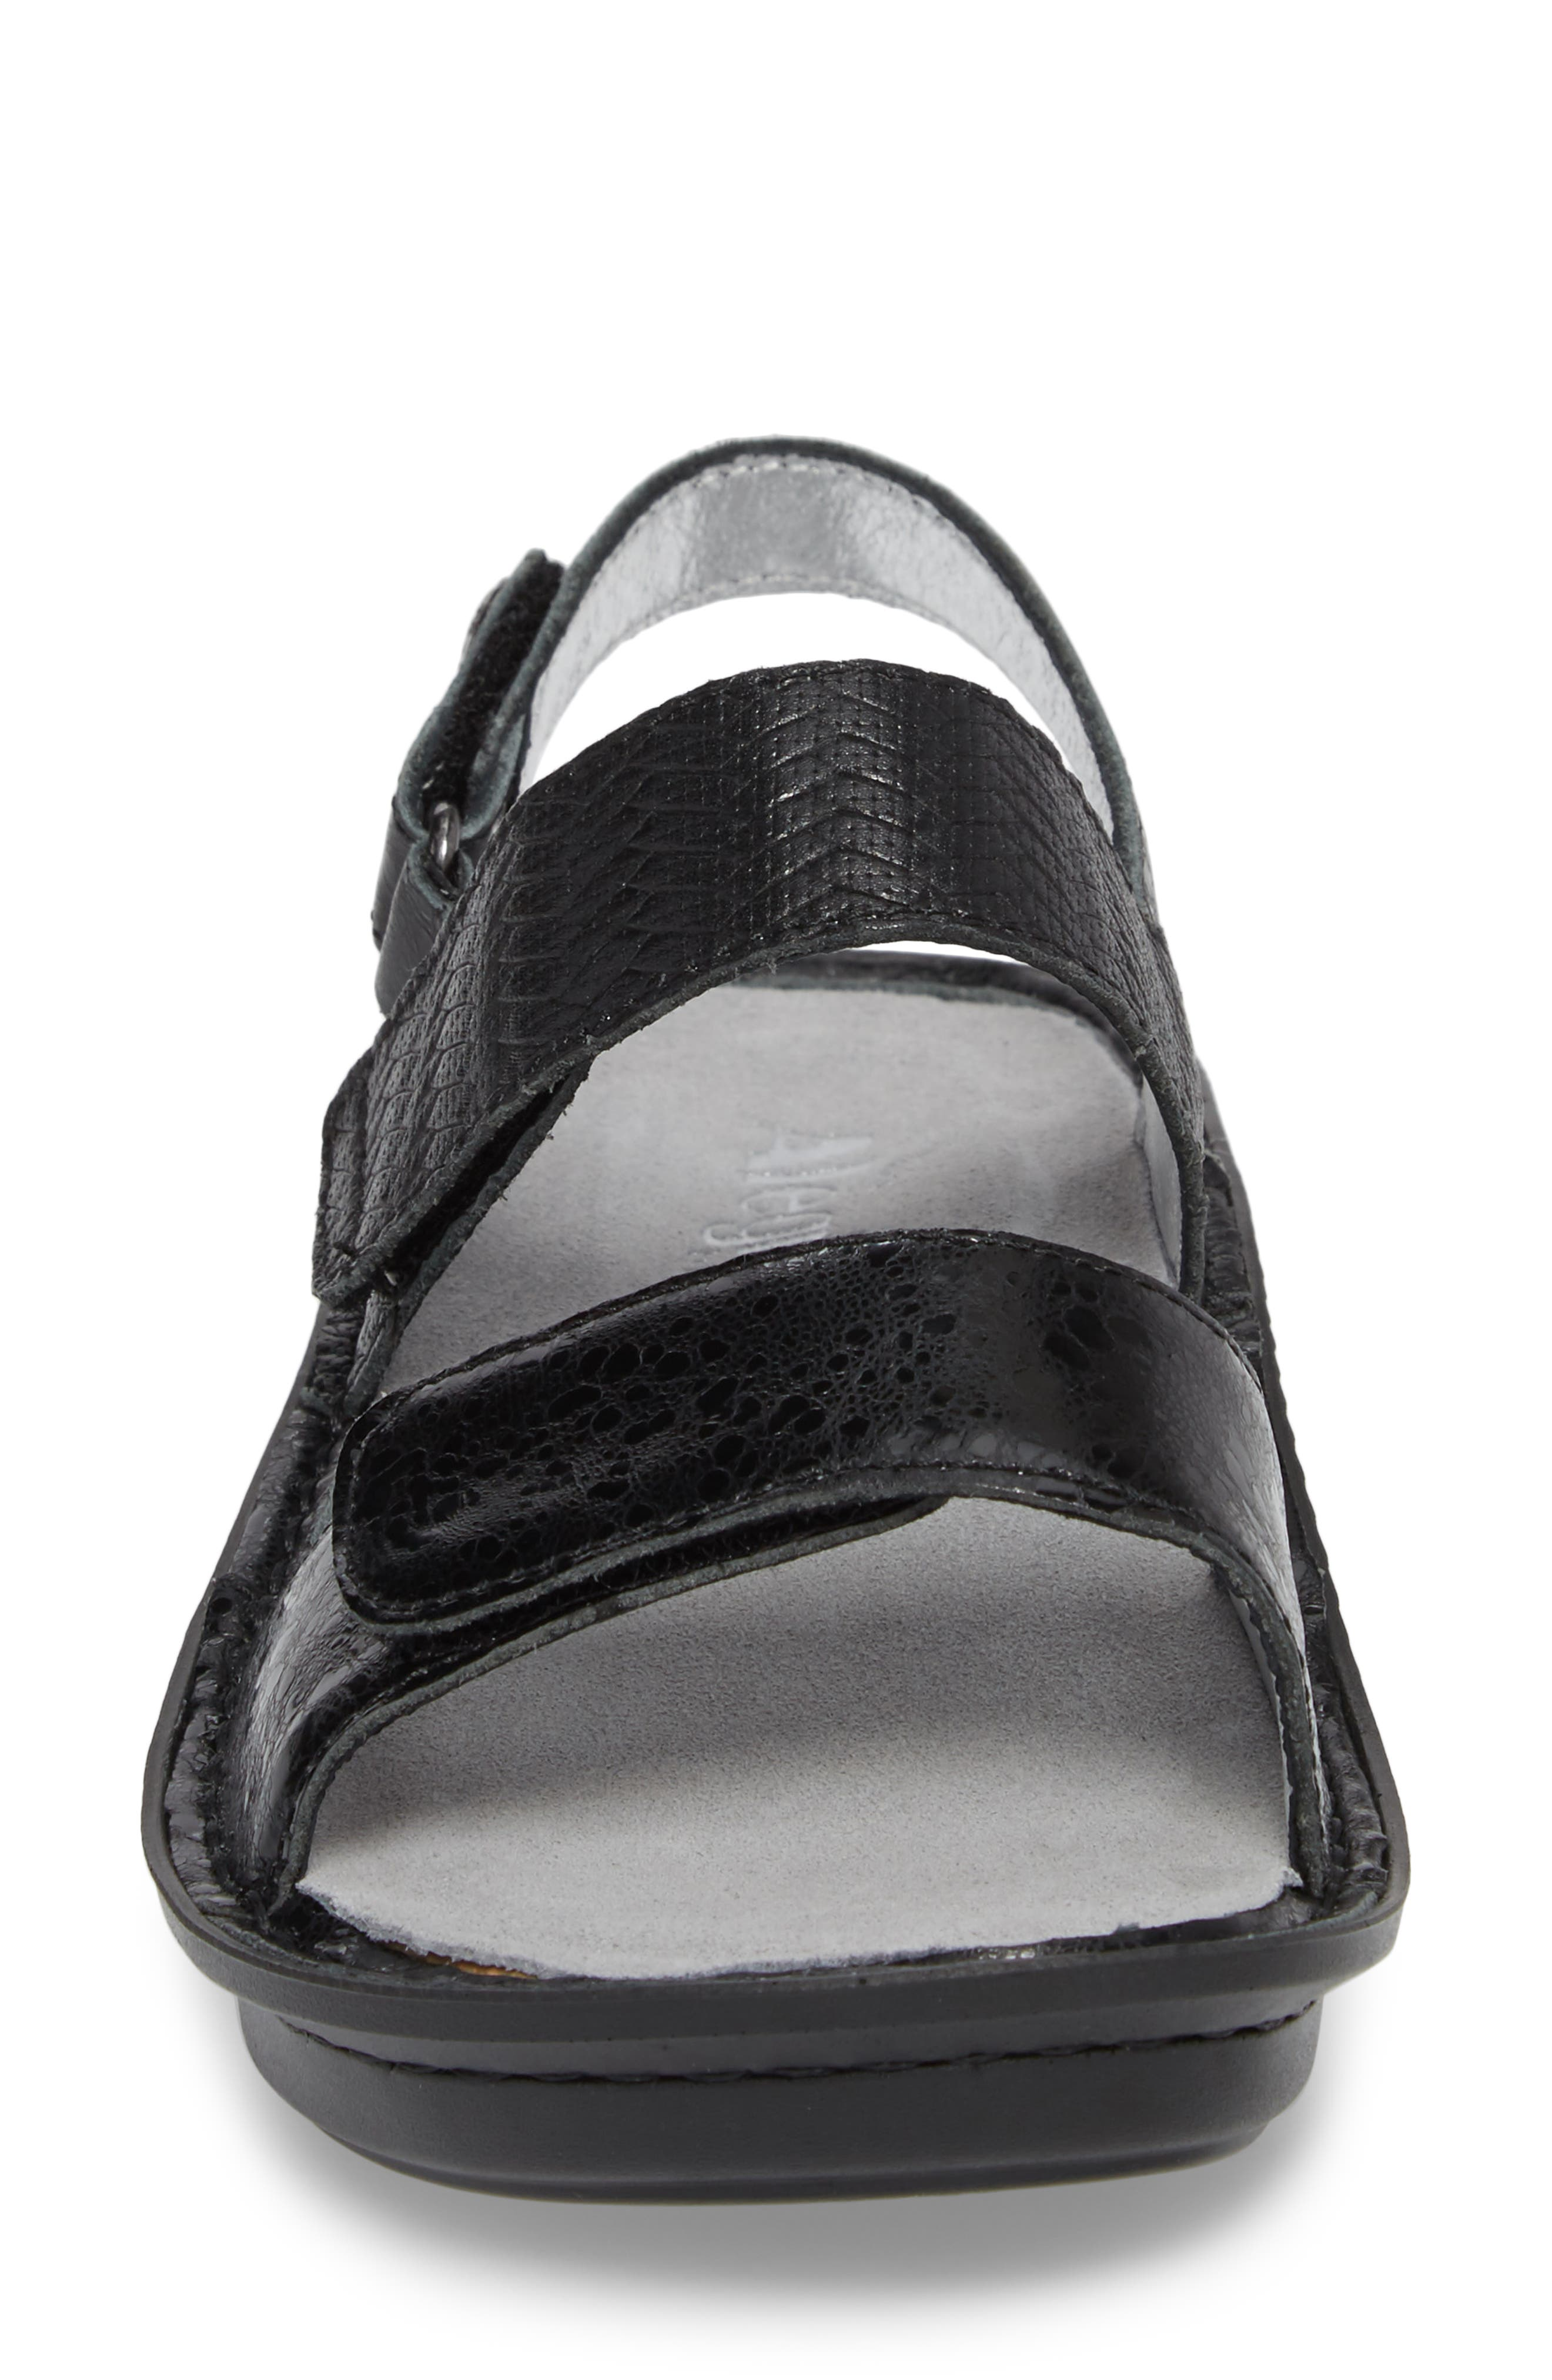 'Verona' Sandal,                             Alternate thumbnail 4, color,                             BRAIDED BLACK LEATHER